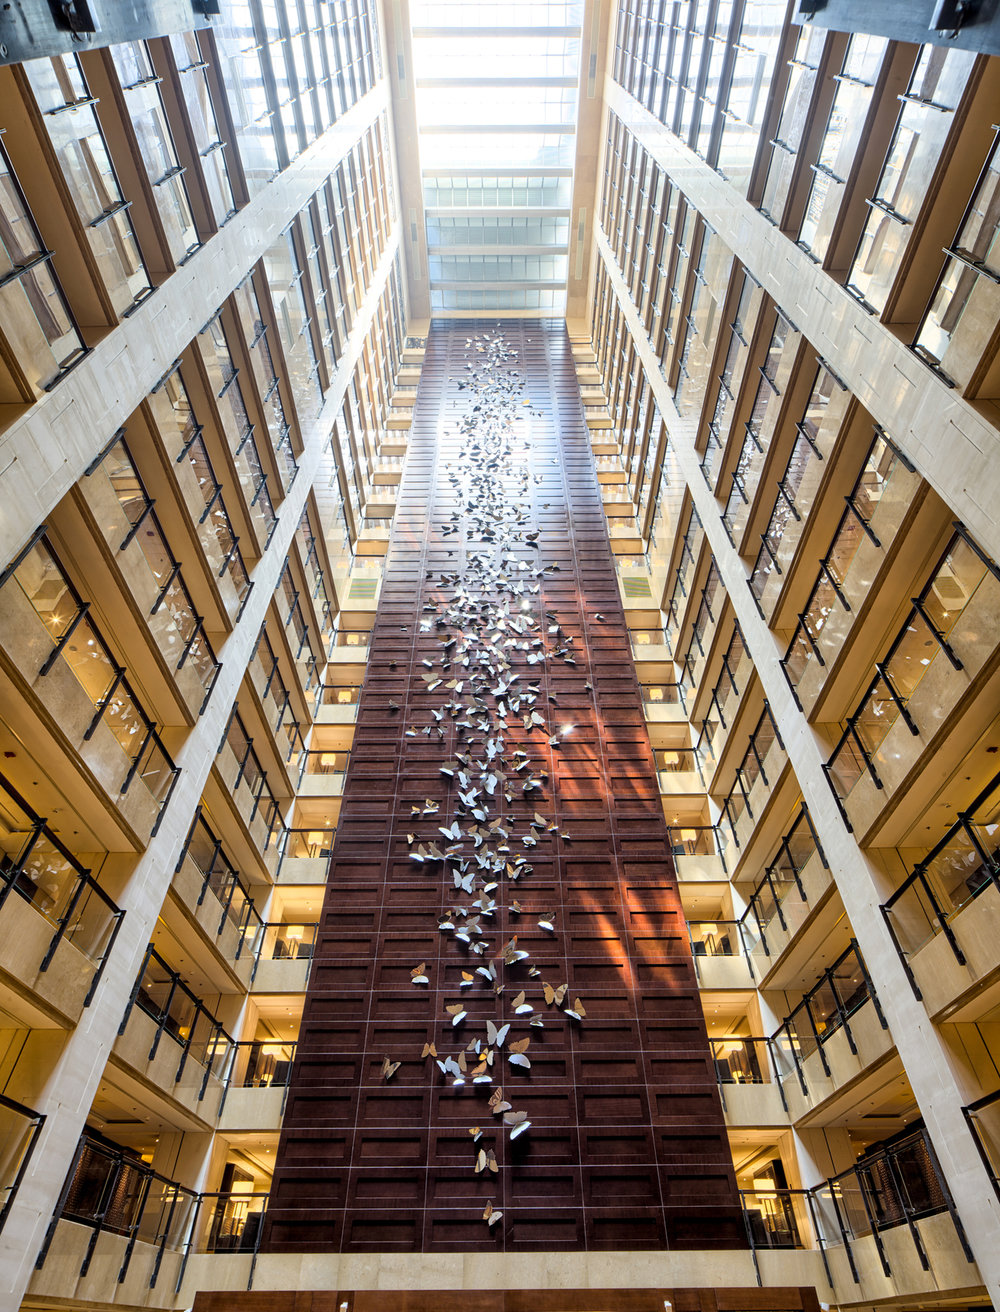 Jayne Dyer,  The Butterfly Effect , 2012, Four Seasons Beijing, 66 x 11m